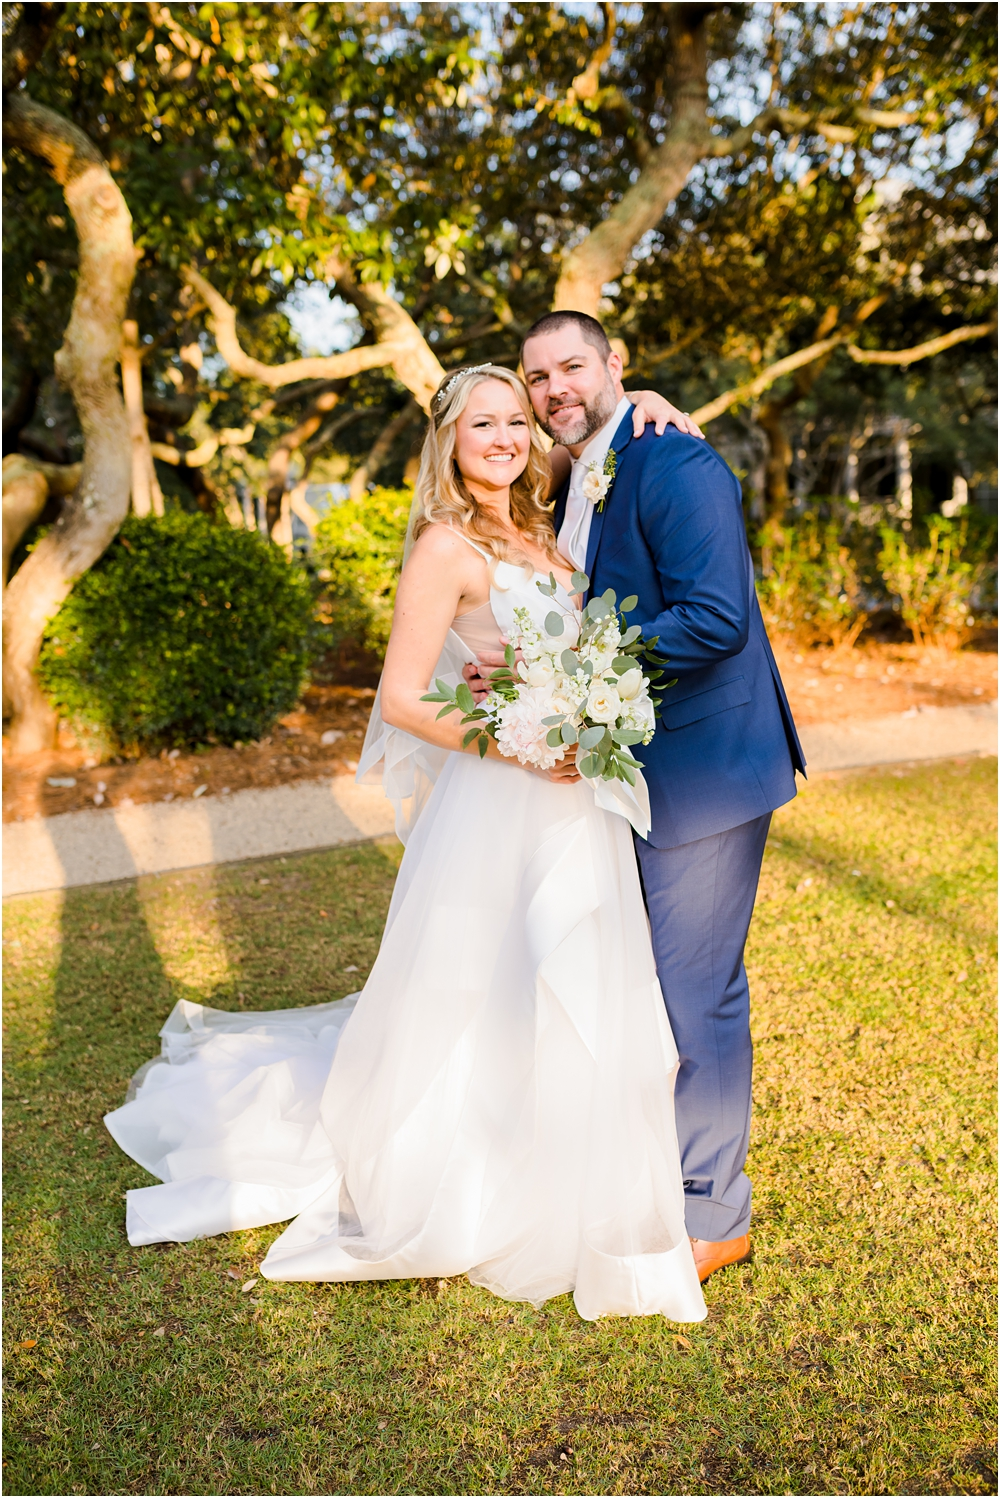 watercolor-florida-wedding-photographer-kiersten-stevenson-photography-99.jpg